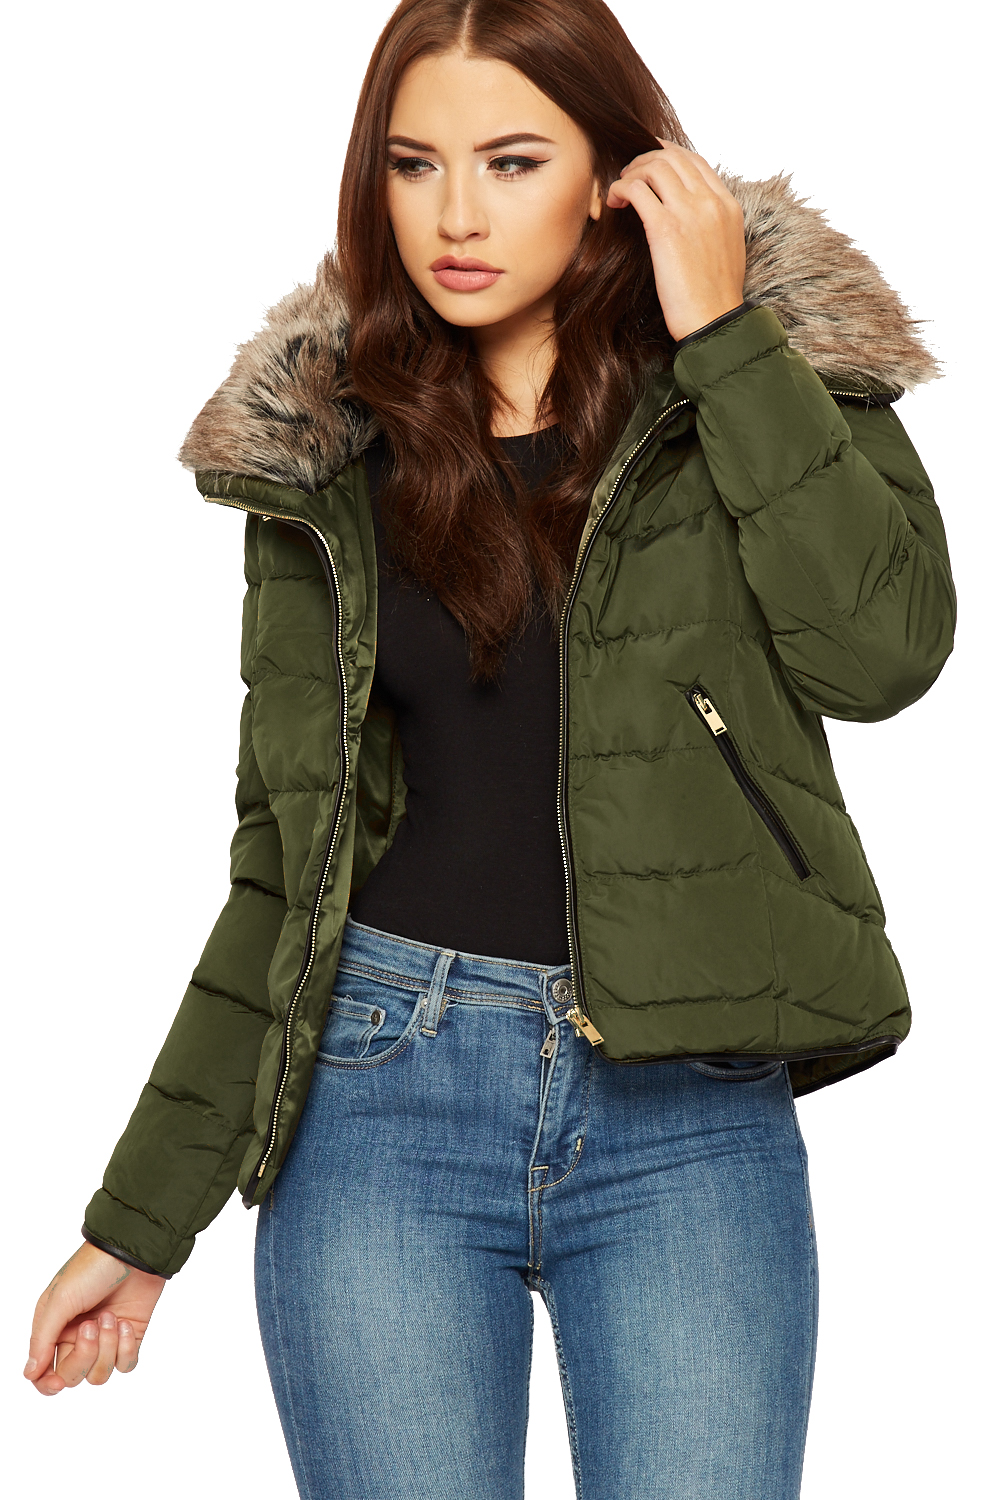 Find a great selection of coats, jackets and blazers for women at jwl-network.ga Shop winter coats, peacoats, raincoats, as well as trenches & blazers from brands like Topshop, Canada Goose, The North Face & more. Free shipping & returns.